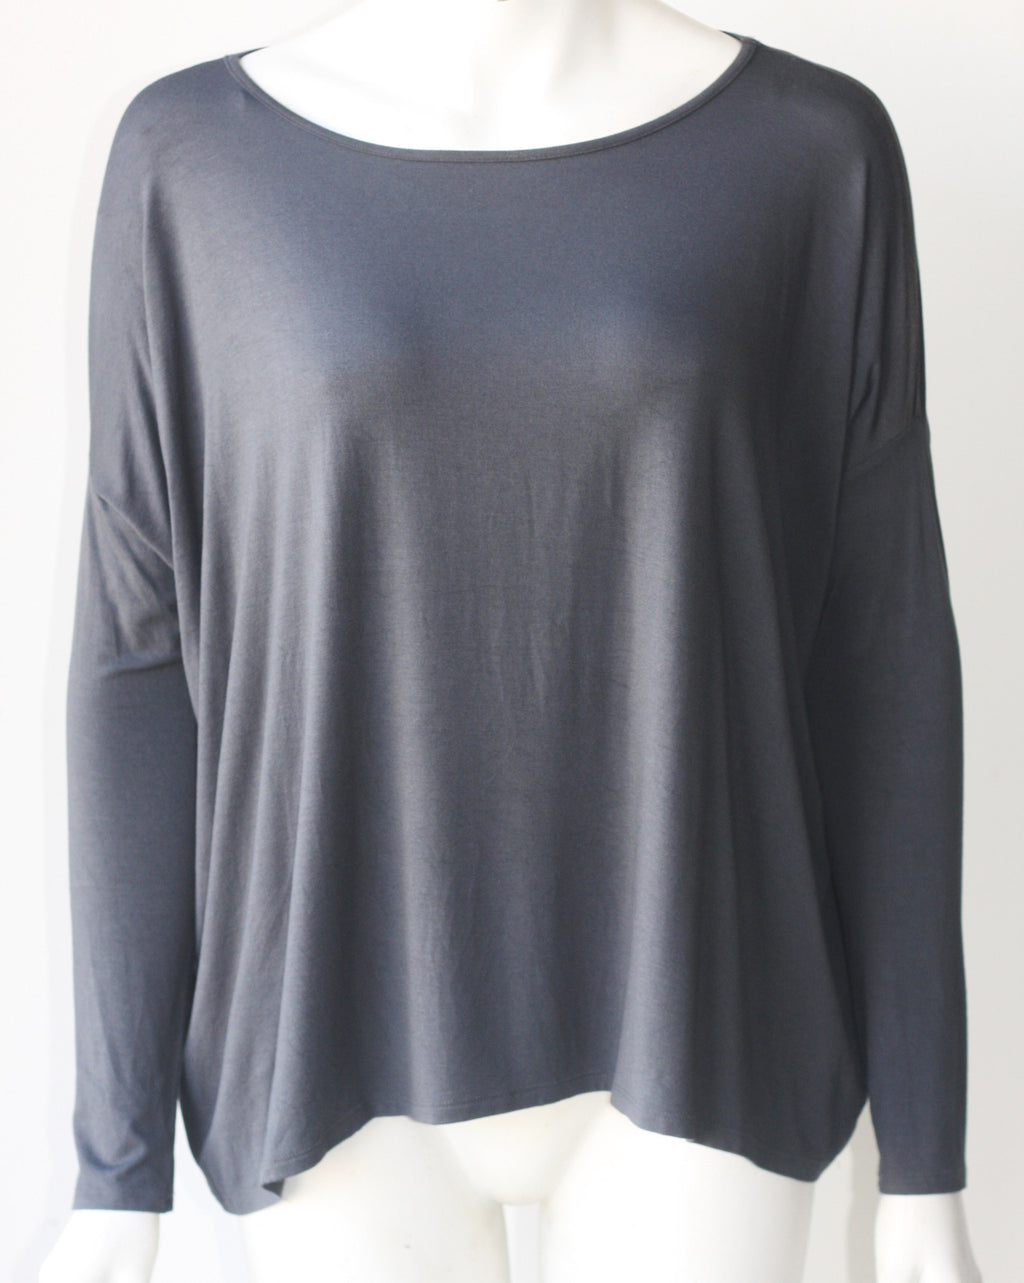 Fluxus Grey Dolman Long Sleeve Top - Joyce's Closet  - 1